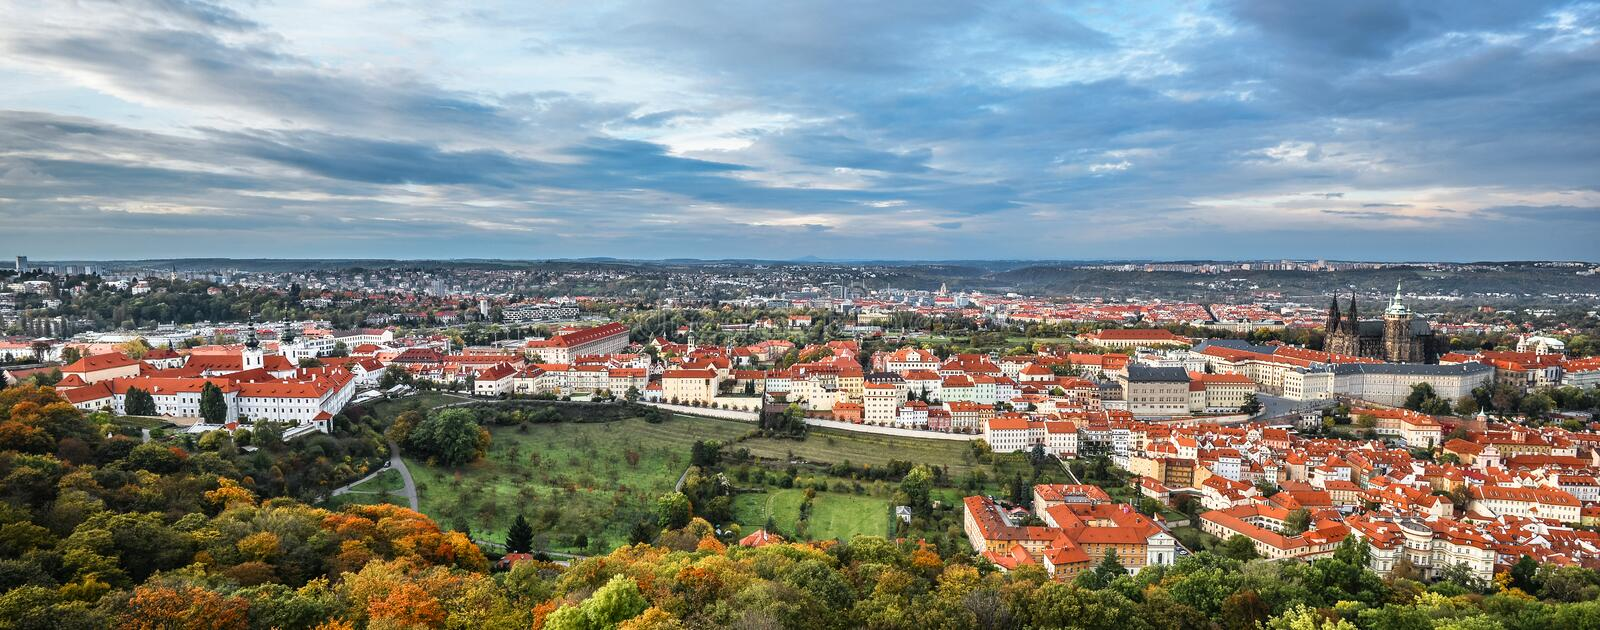 Bright and beautiful panoramic view on Saints Vitus Cathedral, Prague Castle, Old town and city center with old red roofs and dram royalty free stock photos